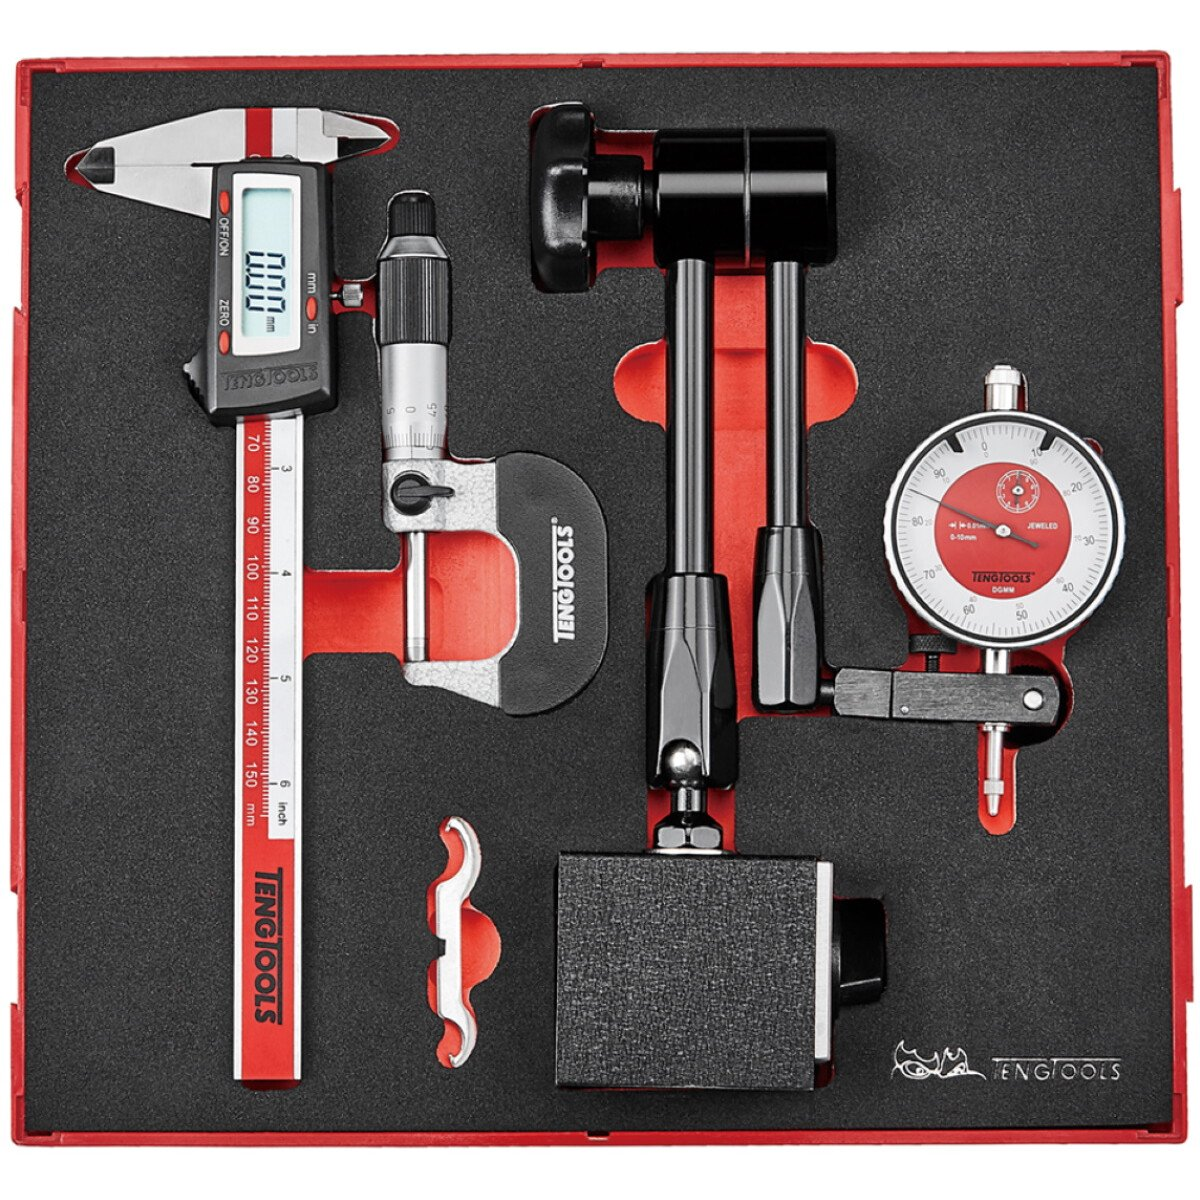 Teng Tools TEDIMM 3 Piece Measuring Tool Set.